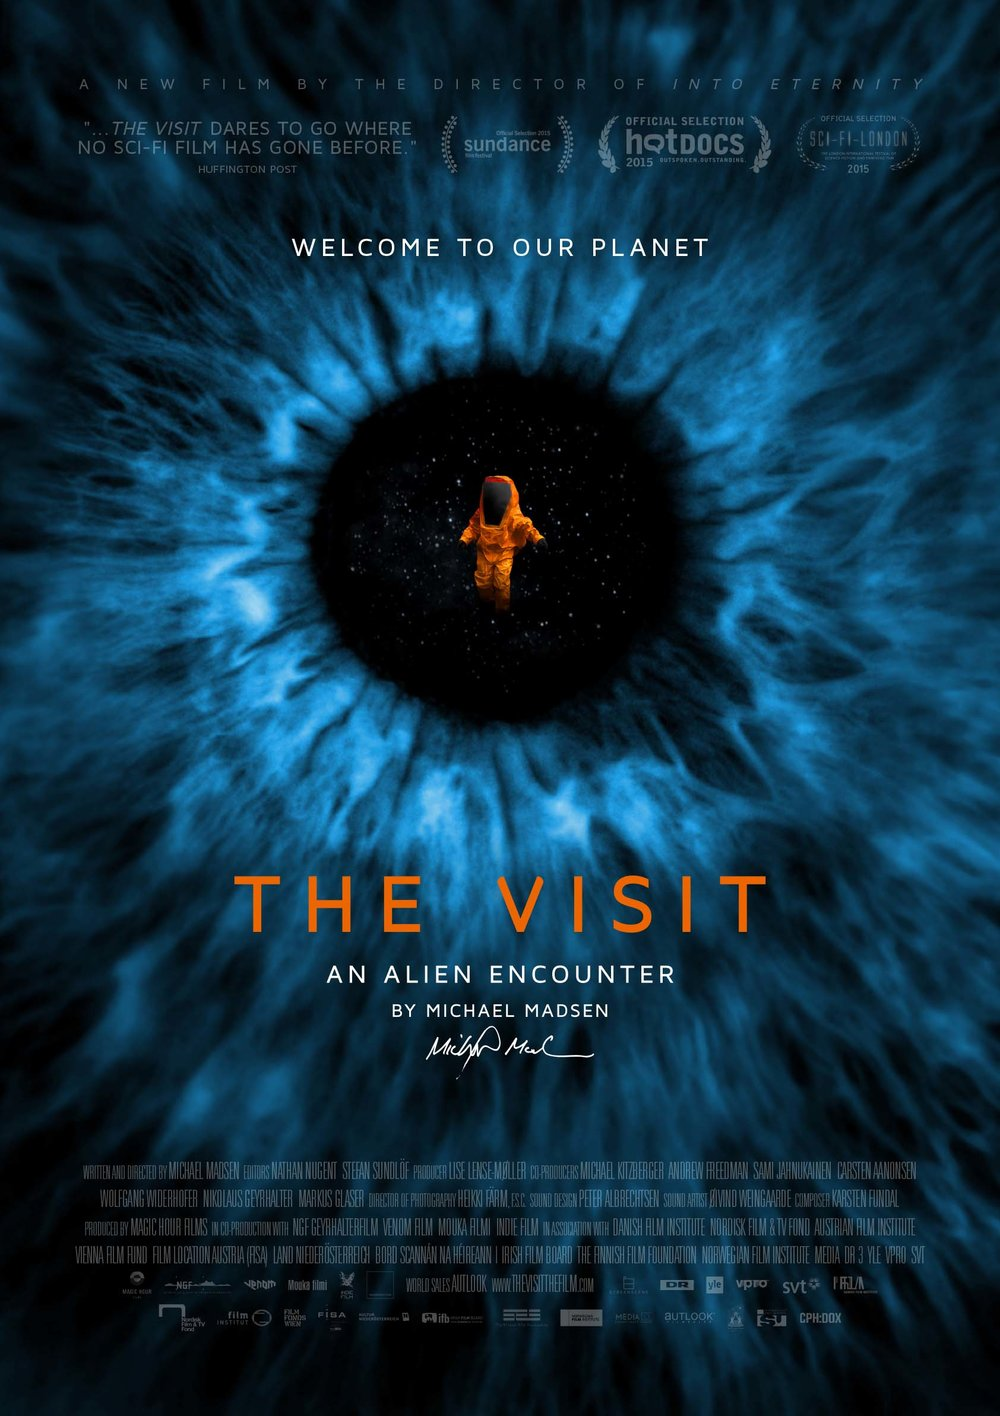 thevisit_poster_594x841mm_26_06_15.jpg